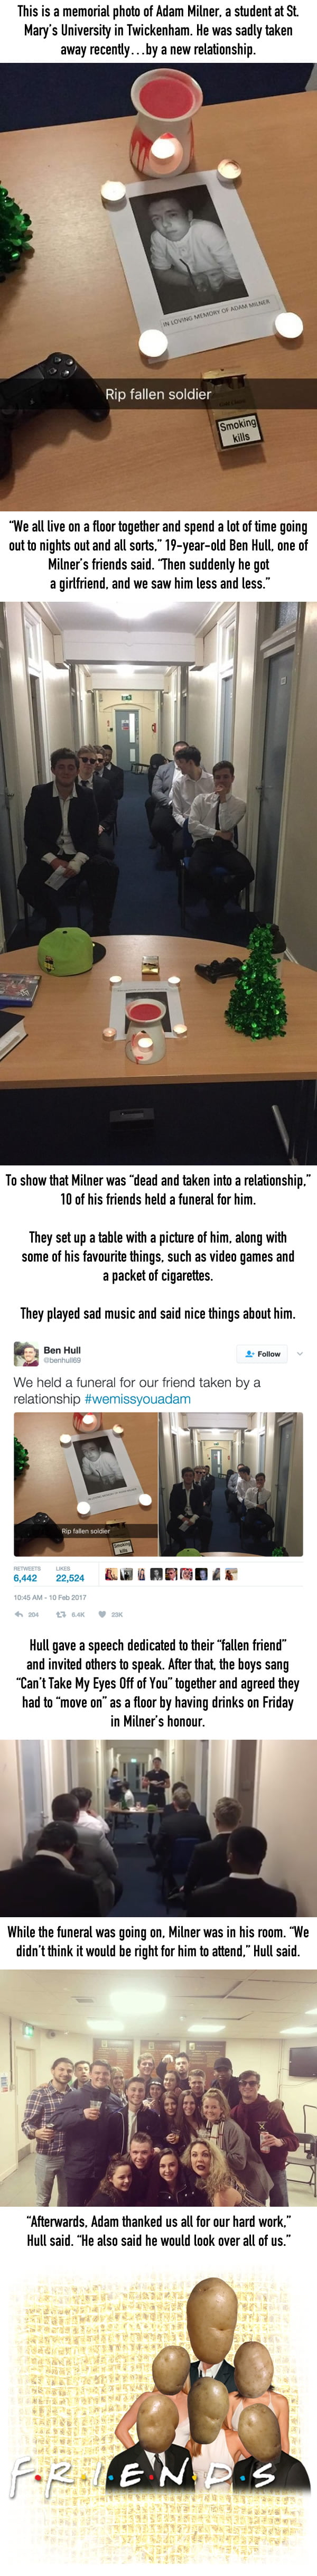 This Guy's Friends Held A Funeral For Him After He Got A Girlfriend